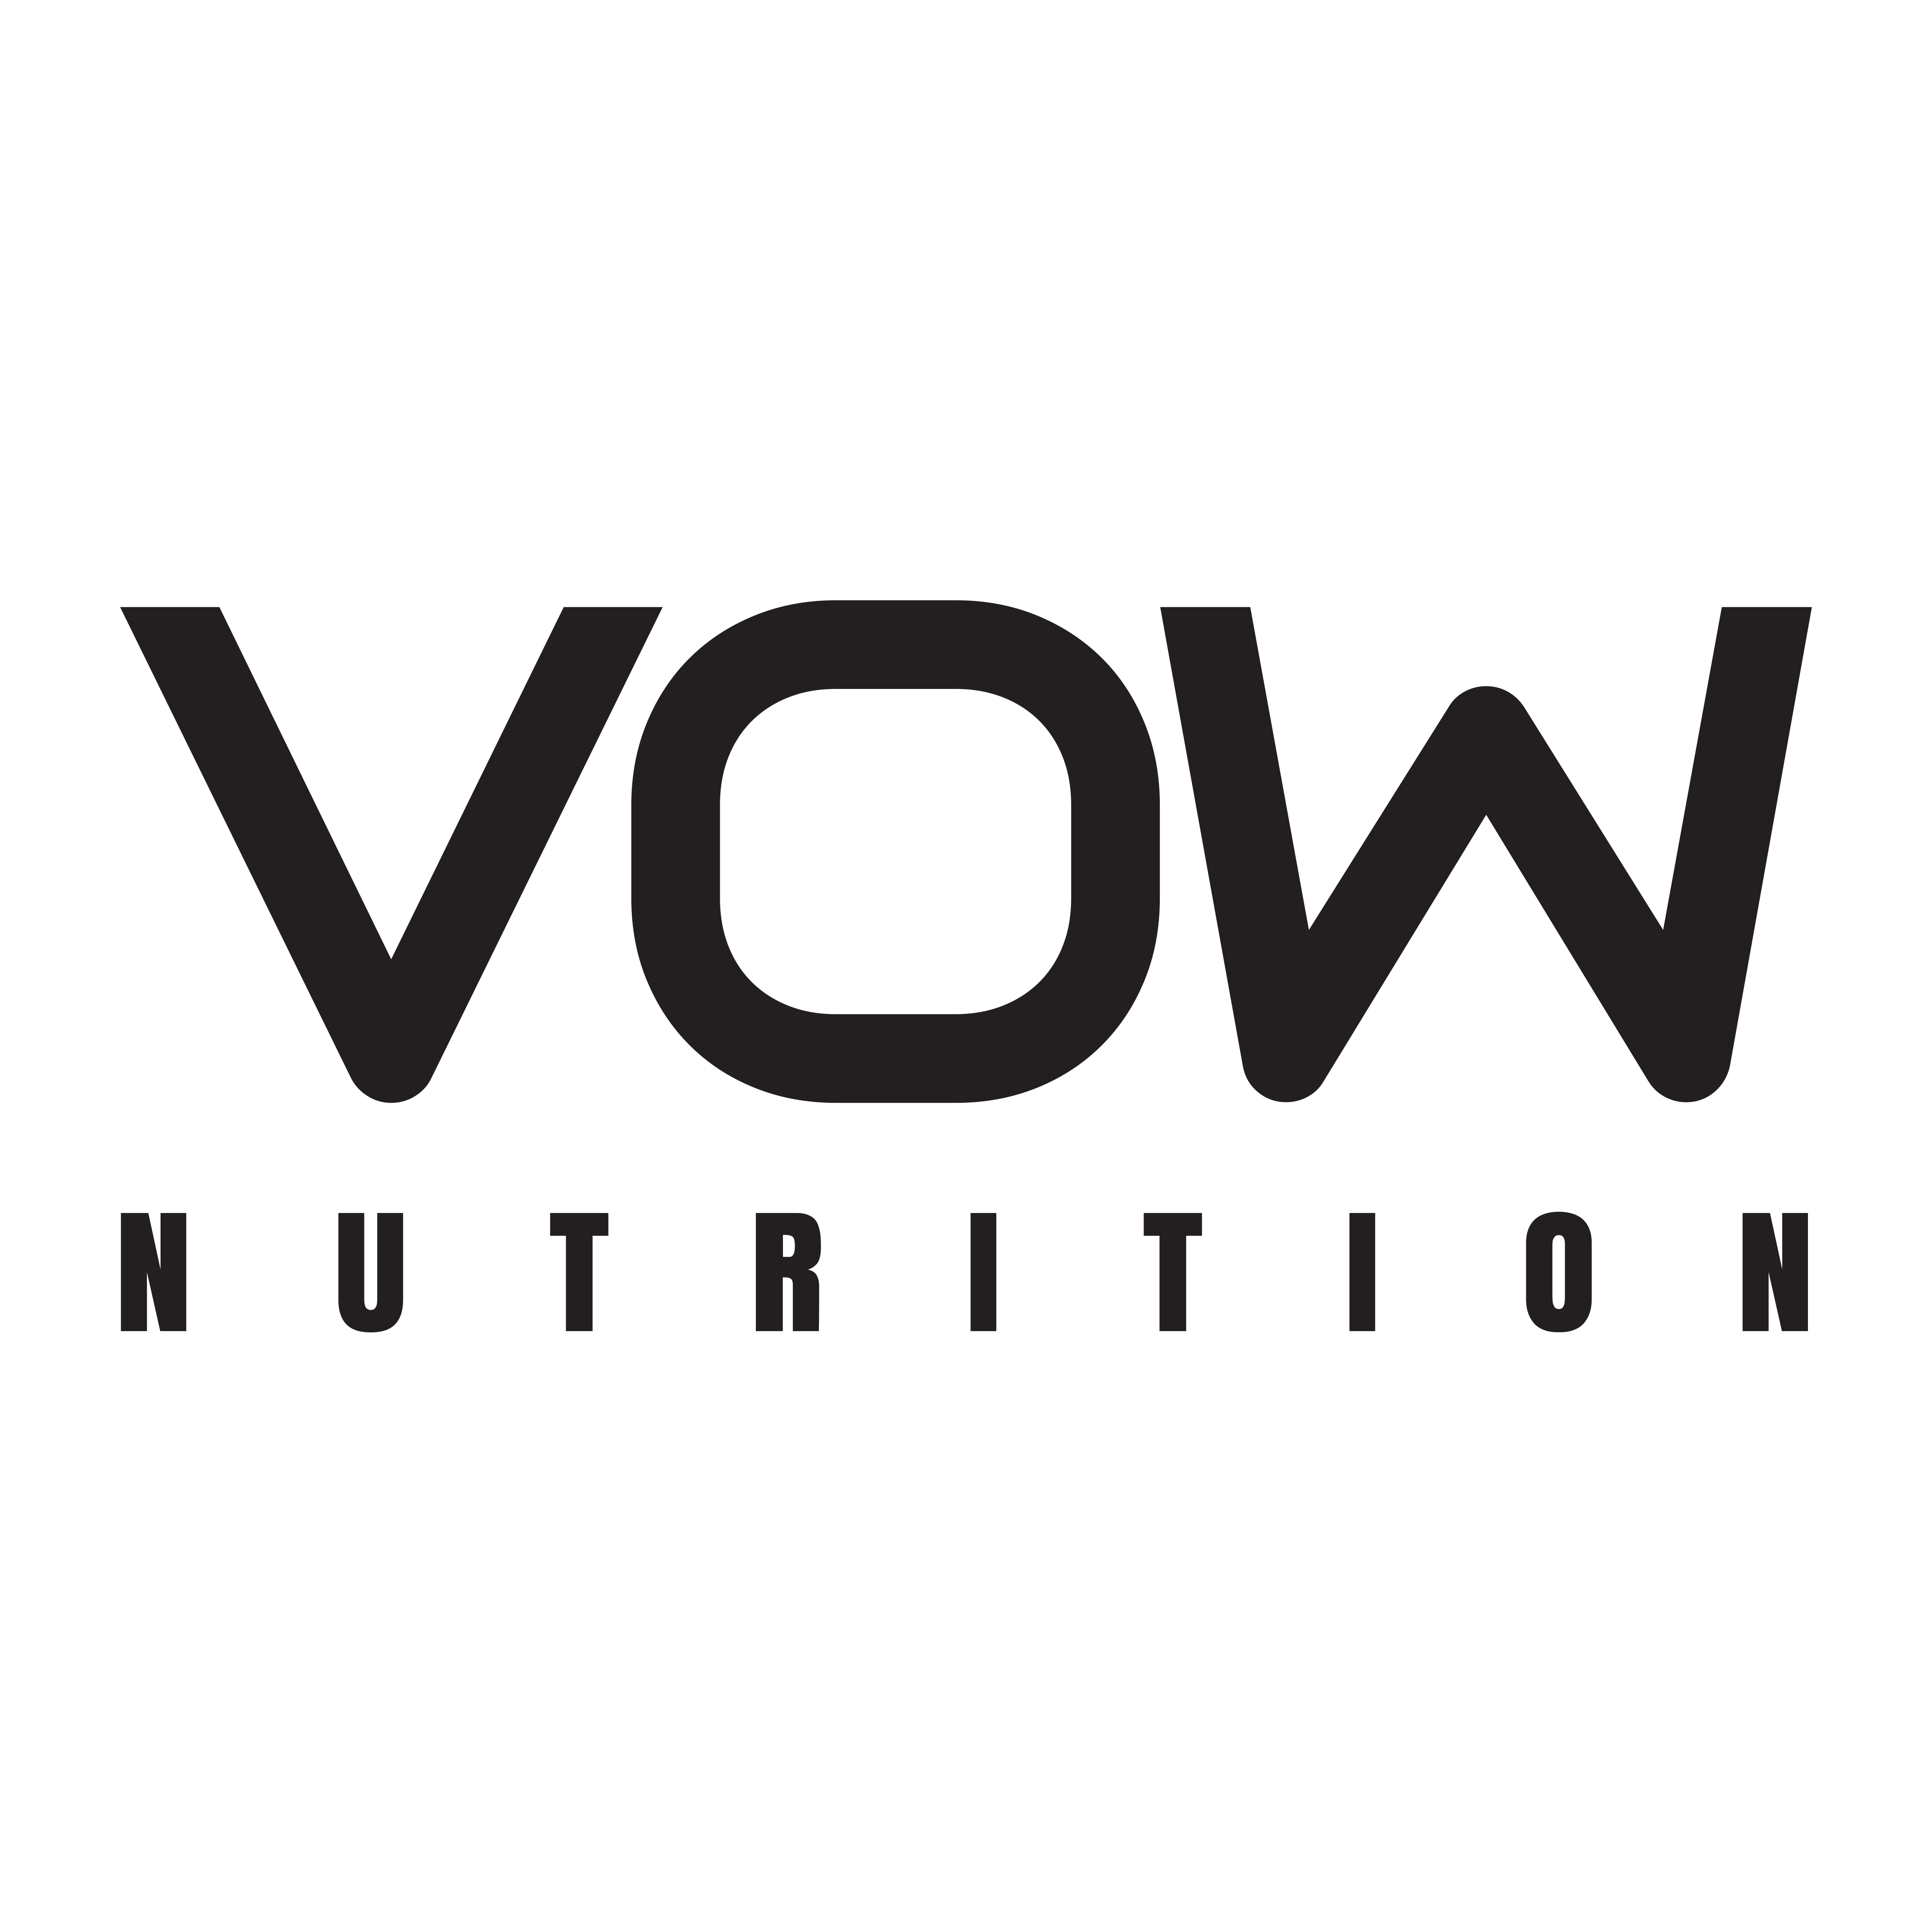 Vow Nutrition